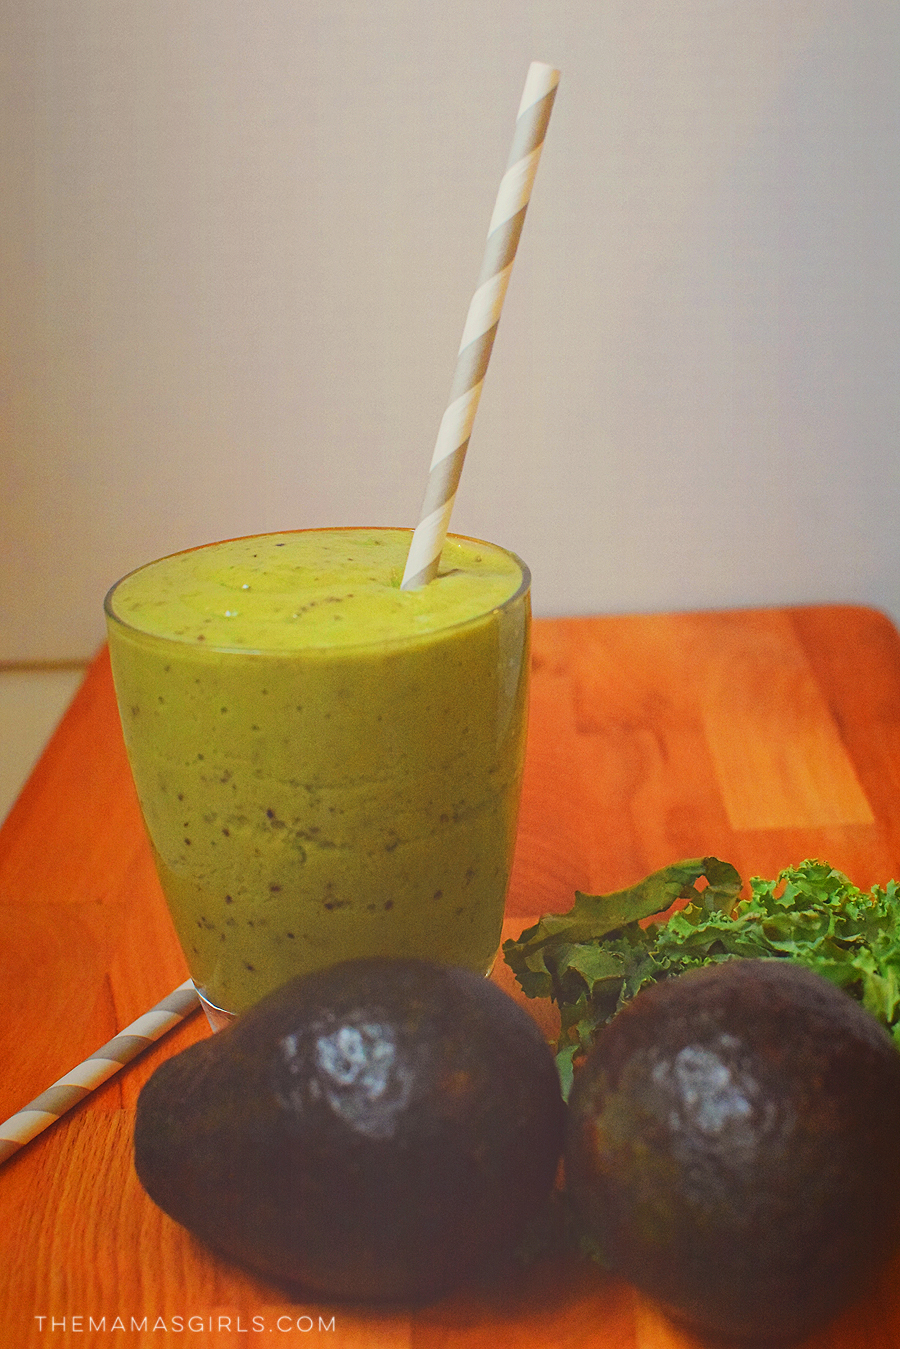 Creamy Avocado and Kale Green Smoothie